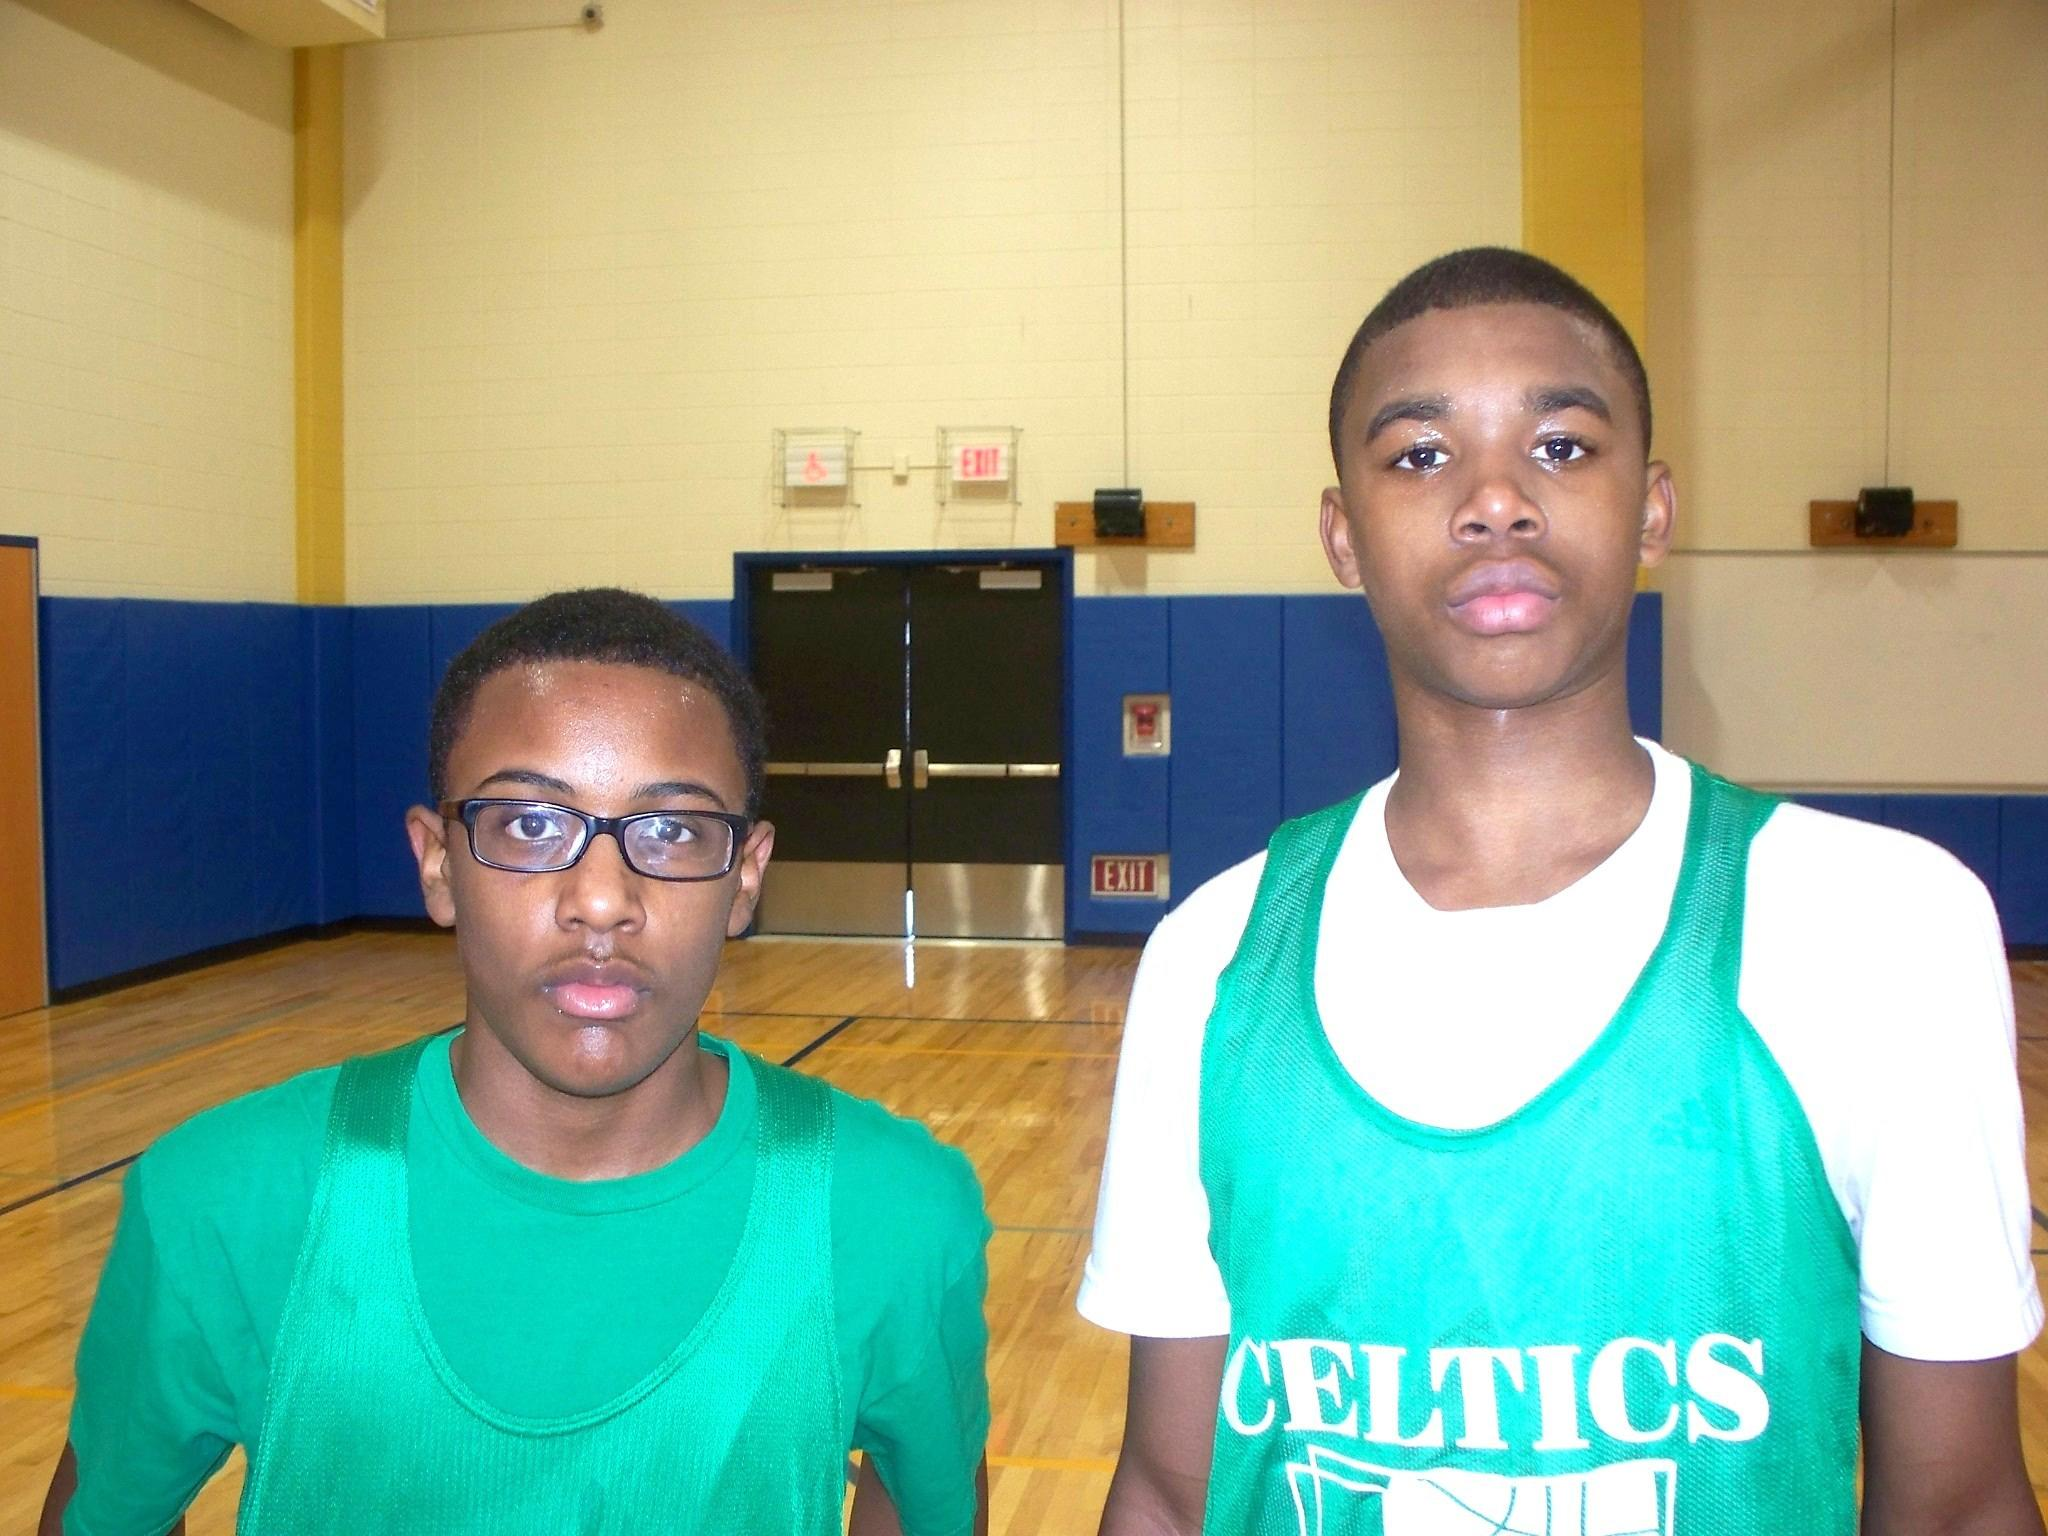 From left to right: Celtics Ryan Bettis-Allen and Phillip Underwood both scored 13 points each in leading the Celtics to a 39-31 week four victory over the Pistons on Sat. Feb. 8 in Bloomfield Youth Basketball League (BYBL) play.